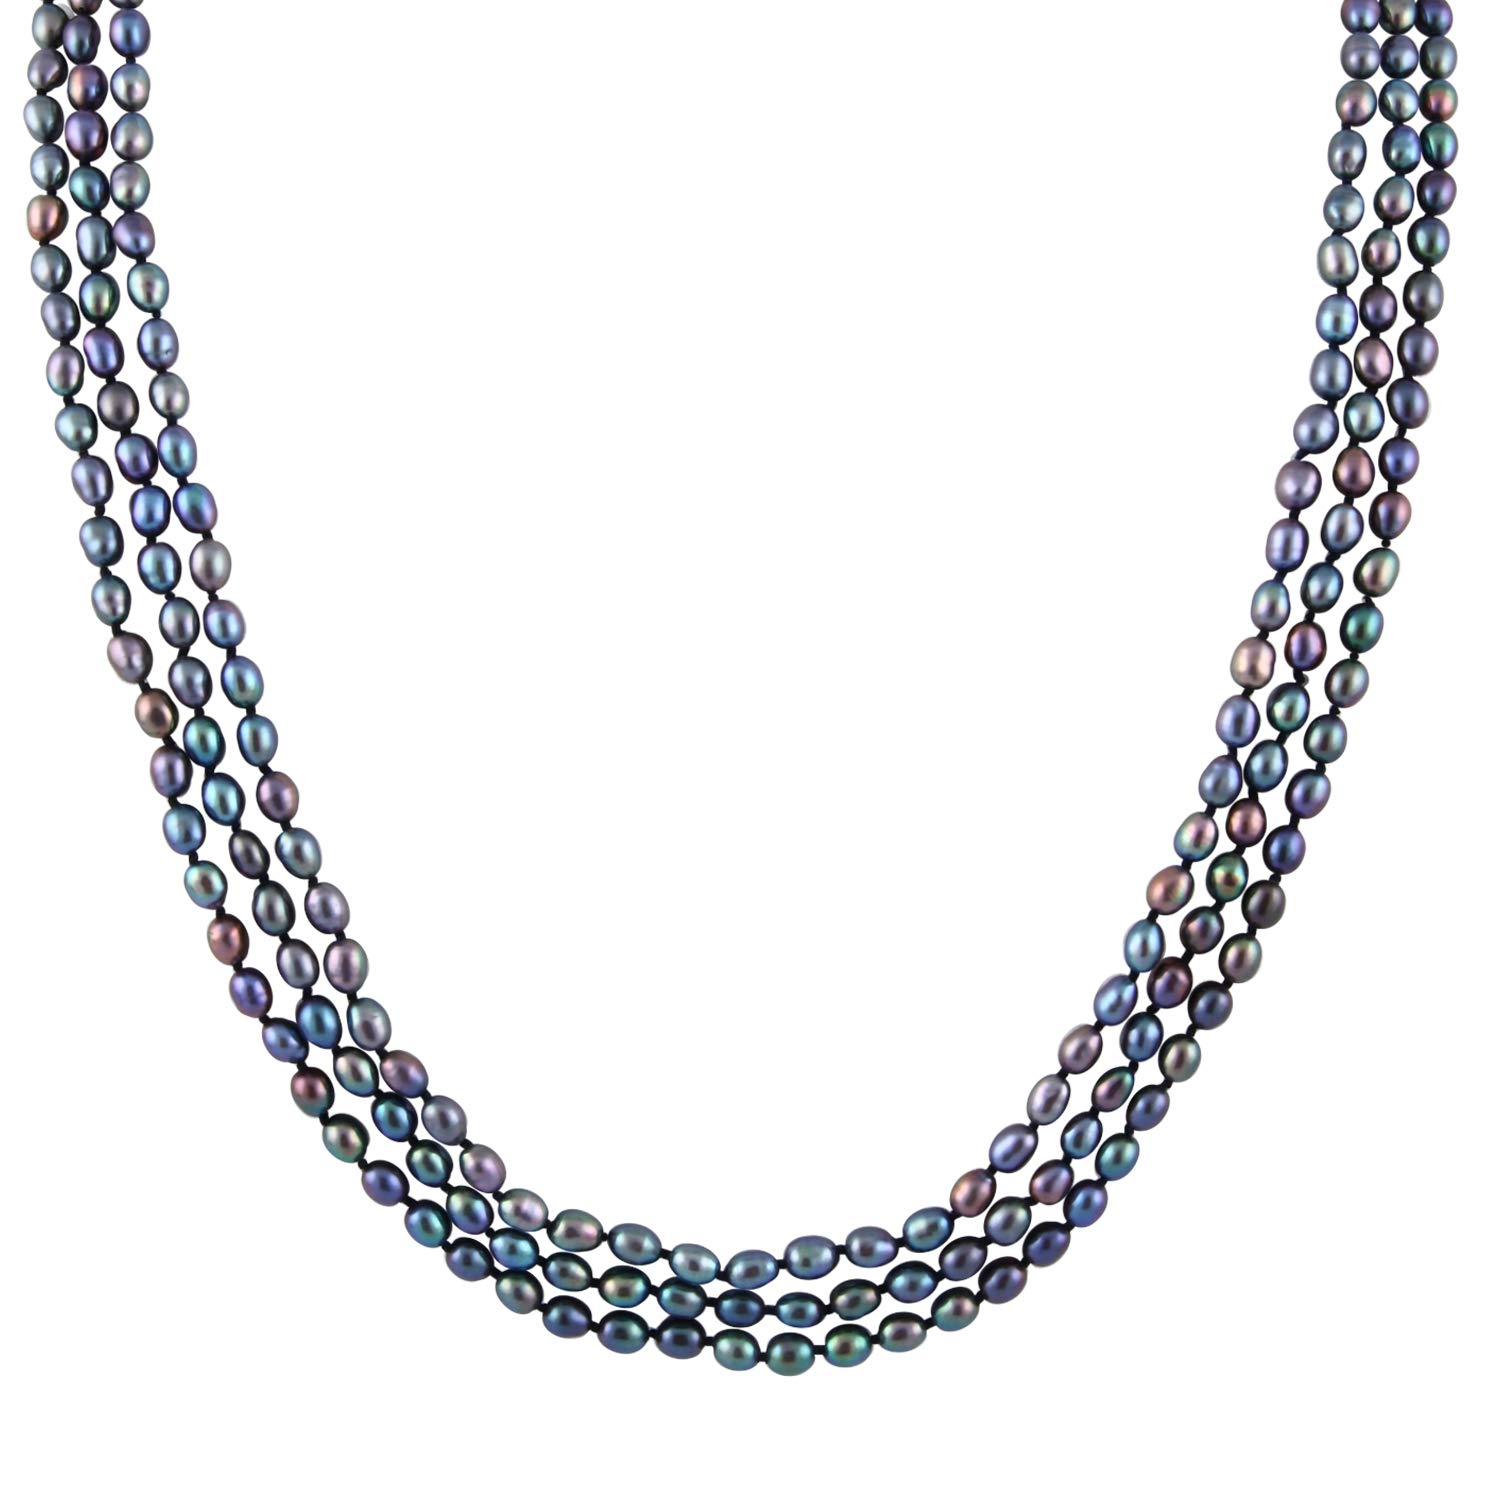 Handpicked A Quality Black Freshwater Cultured Pearl Strand Endless 72'' Necklace by Splendid Pearls